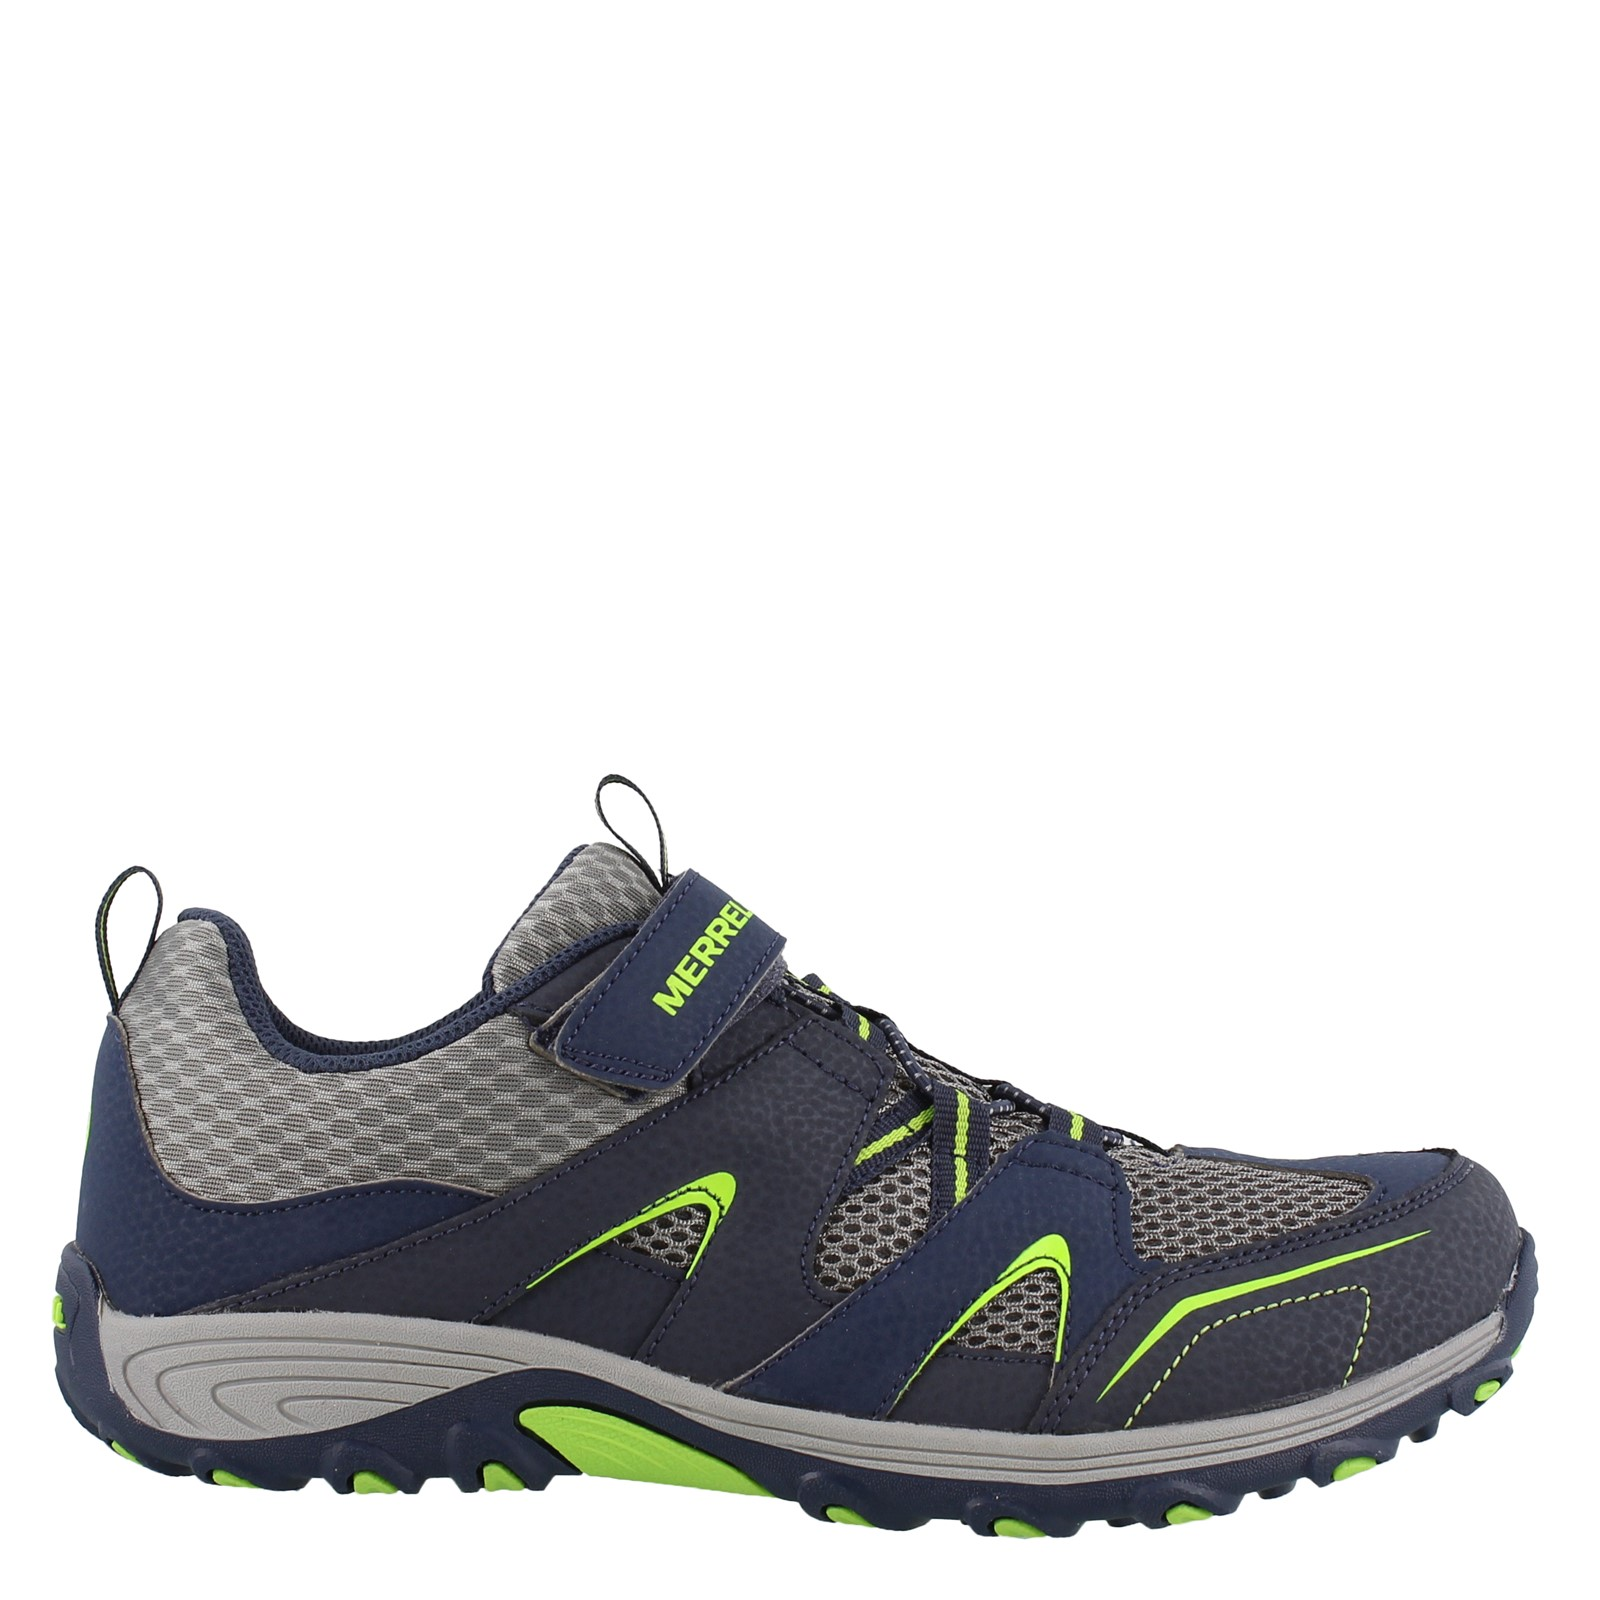 Boy's Merrell, Trail Chaser Sneaker - Little Kid & Big Kid